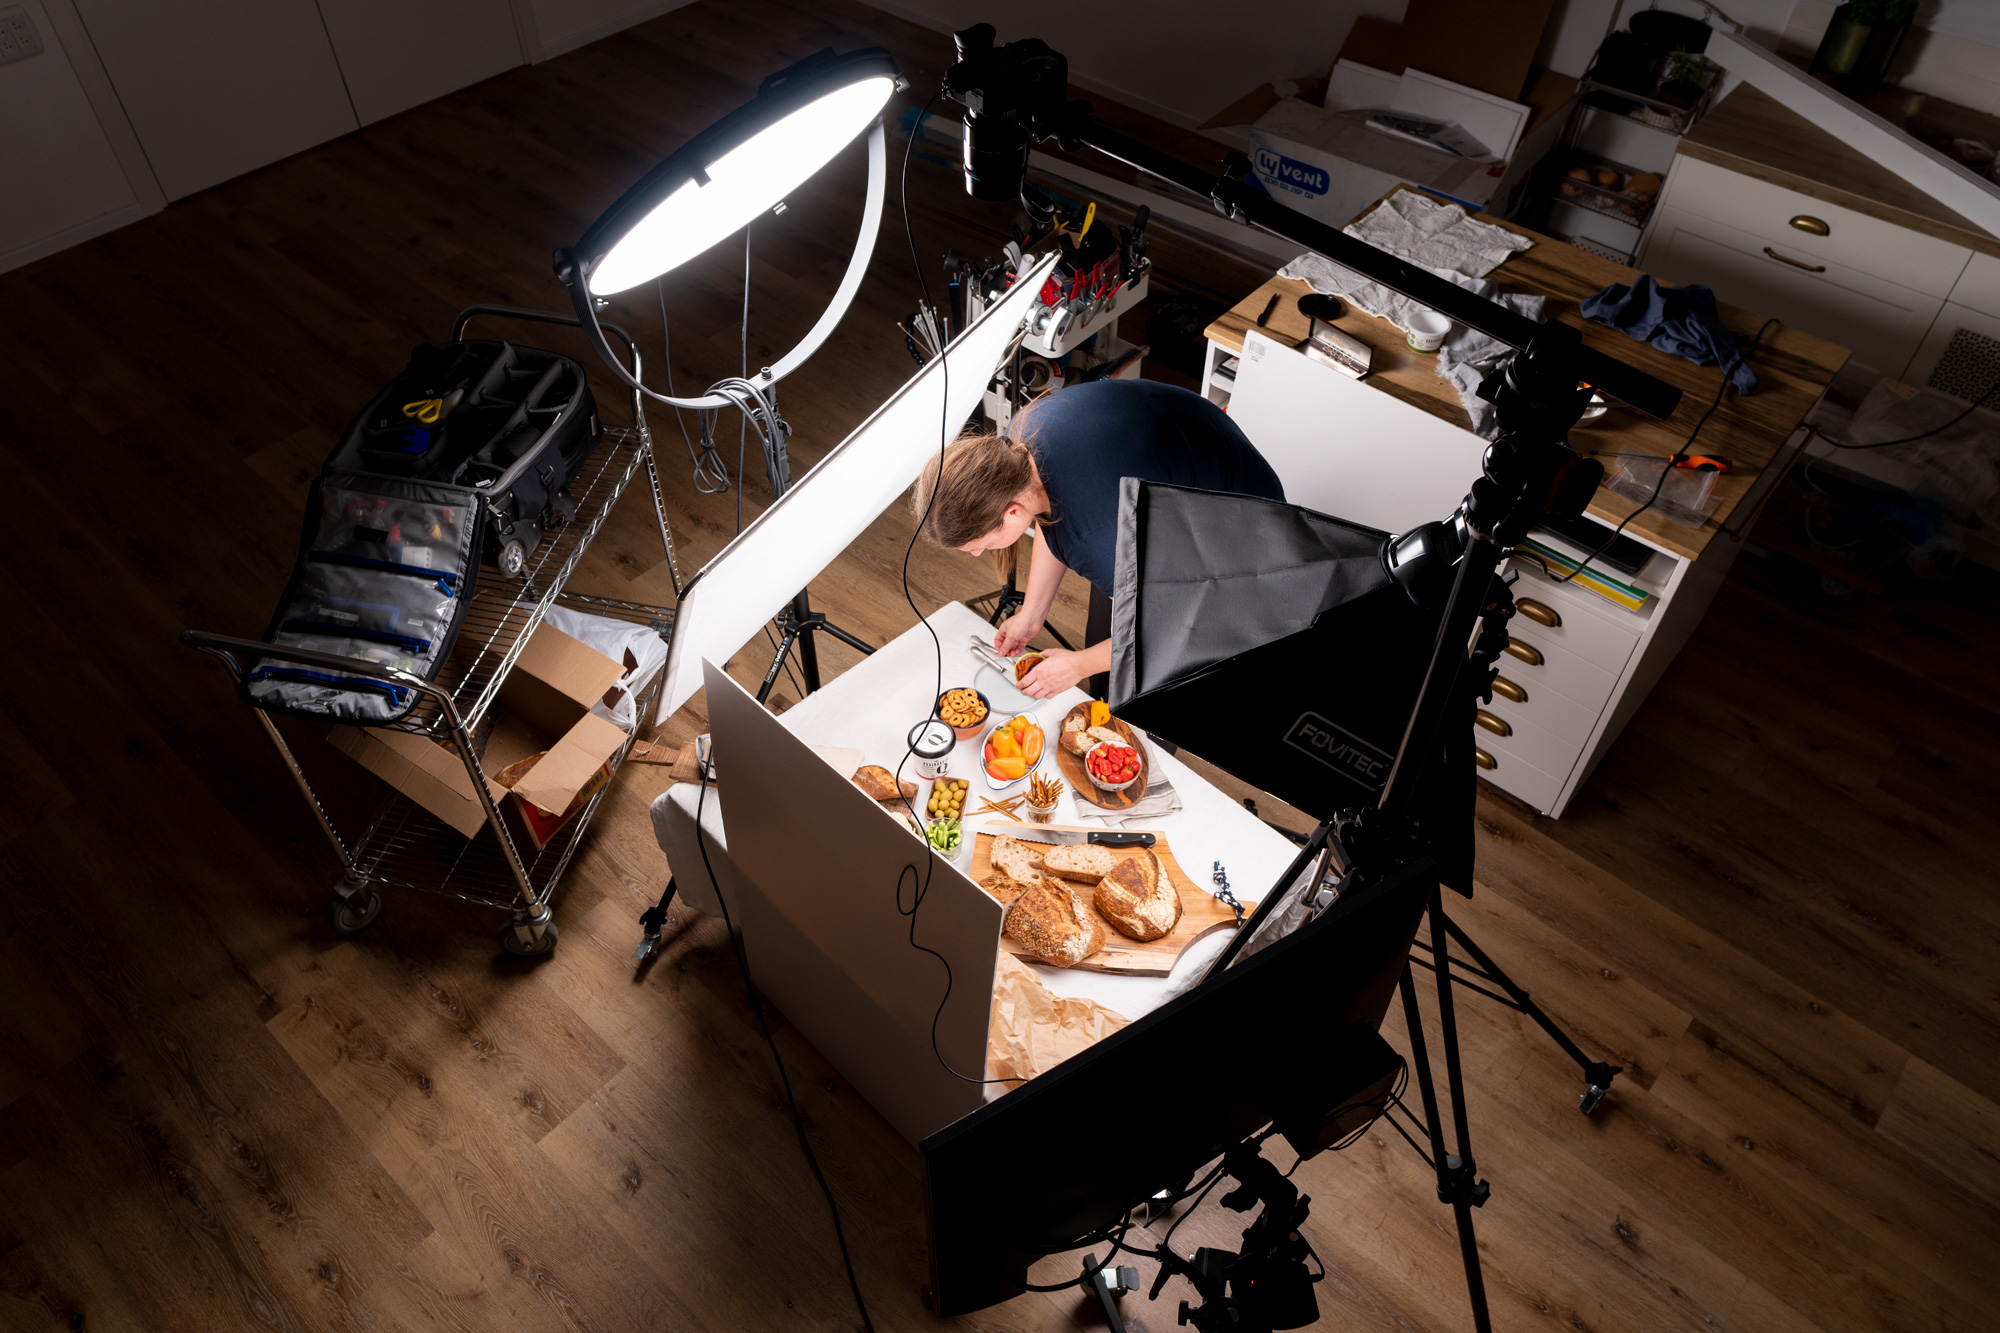 Shooting food with LEDs (notice the darkened room)